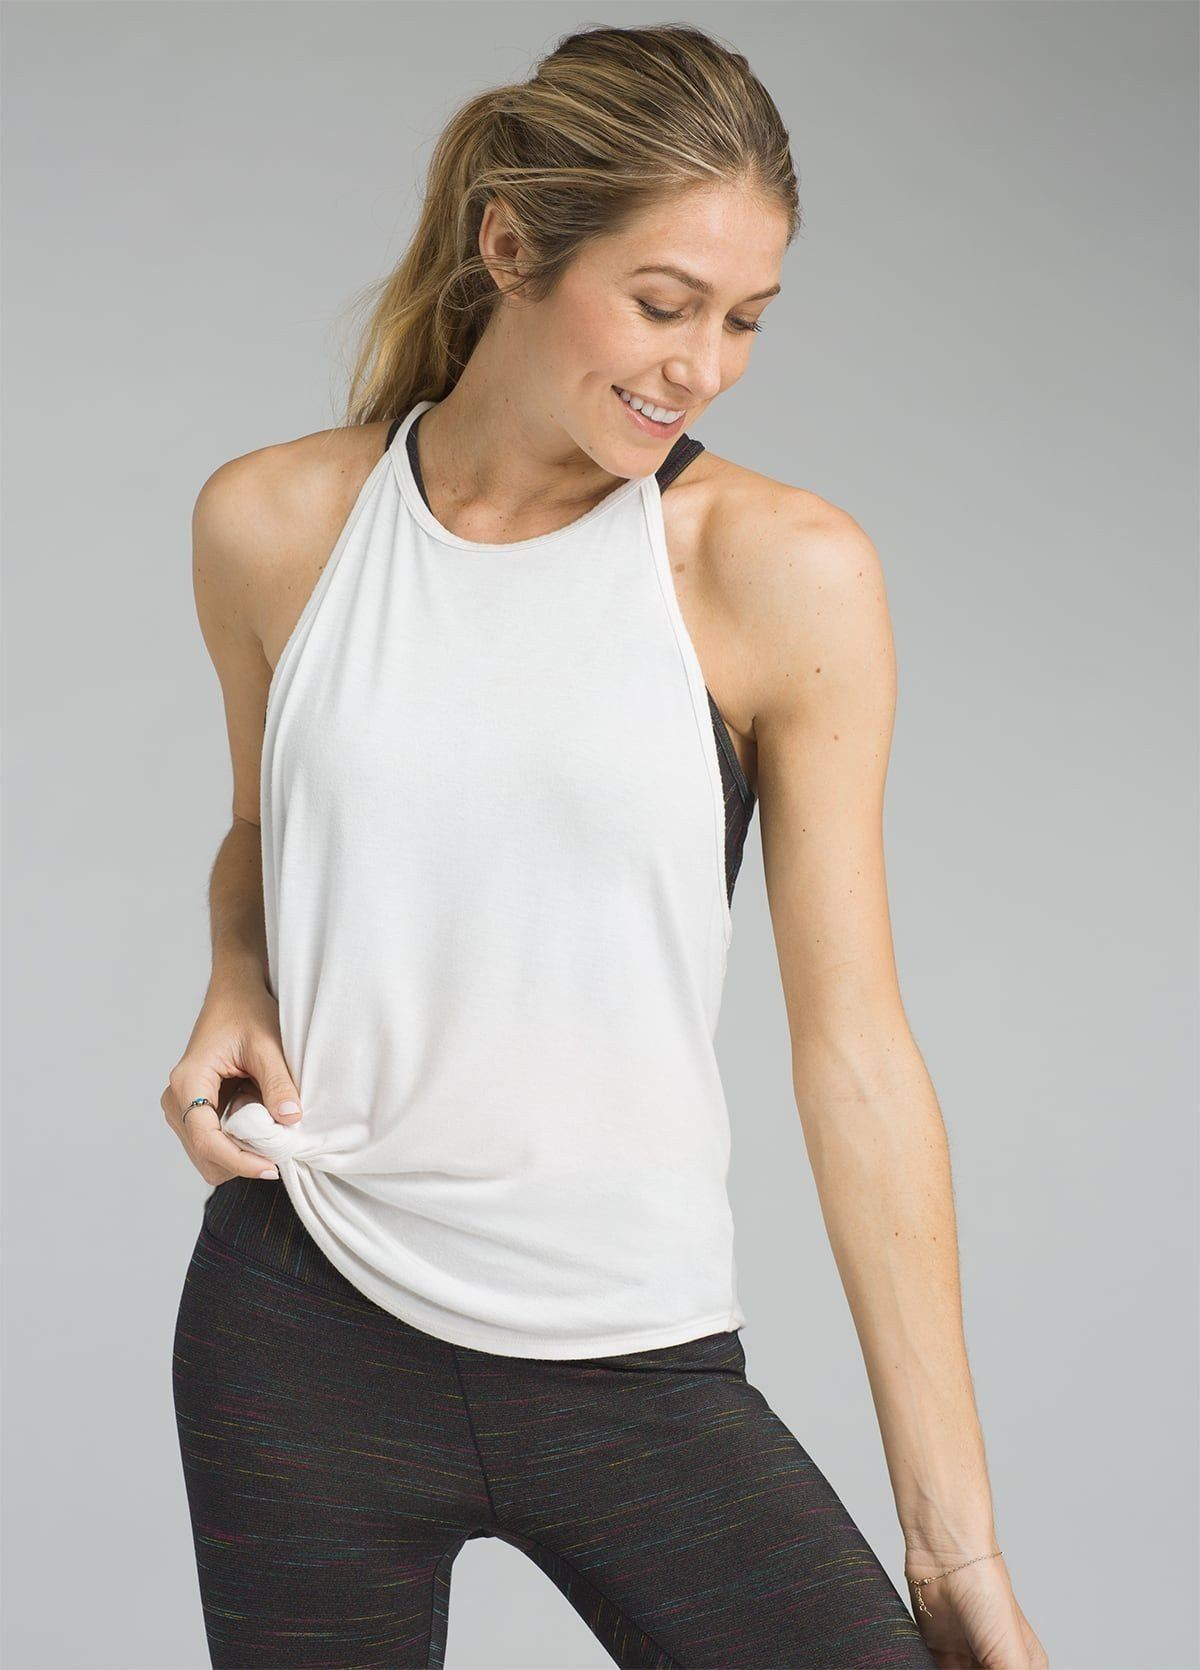 PrAna - Reylian Top - Plant-Based Lenzing Modal ® Fabric - Weekendbee - sustainable sportswear